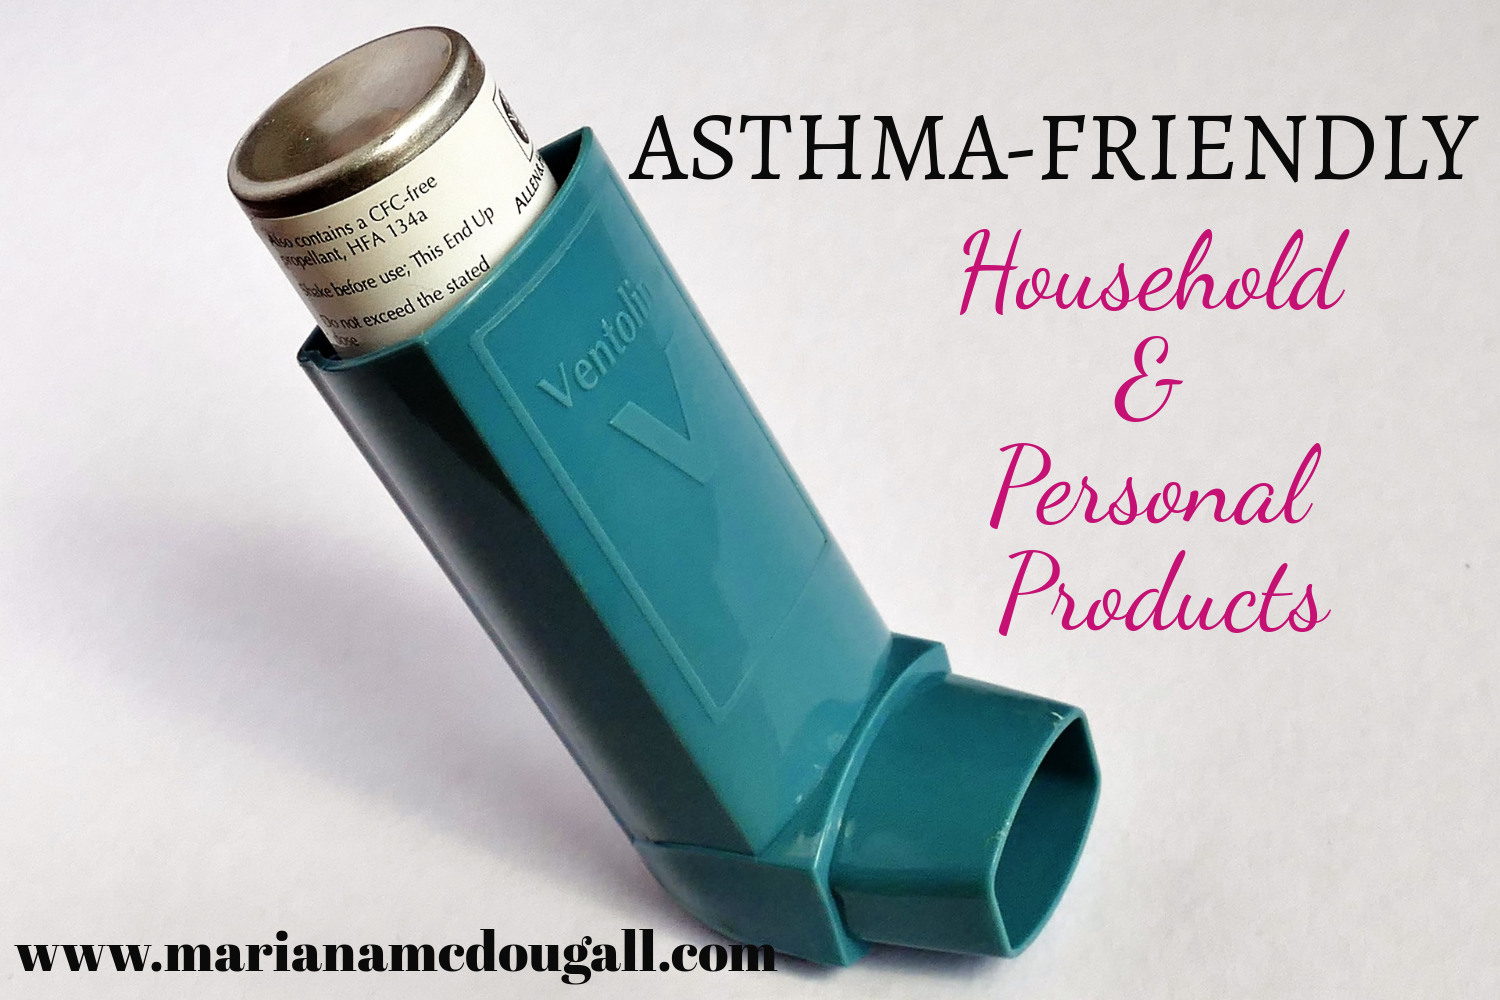 Asthma-Friendly Household and Personal Products